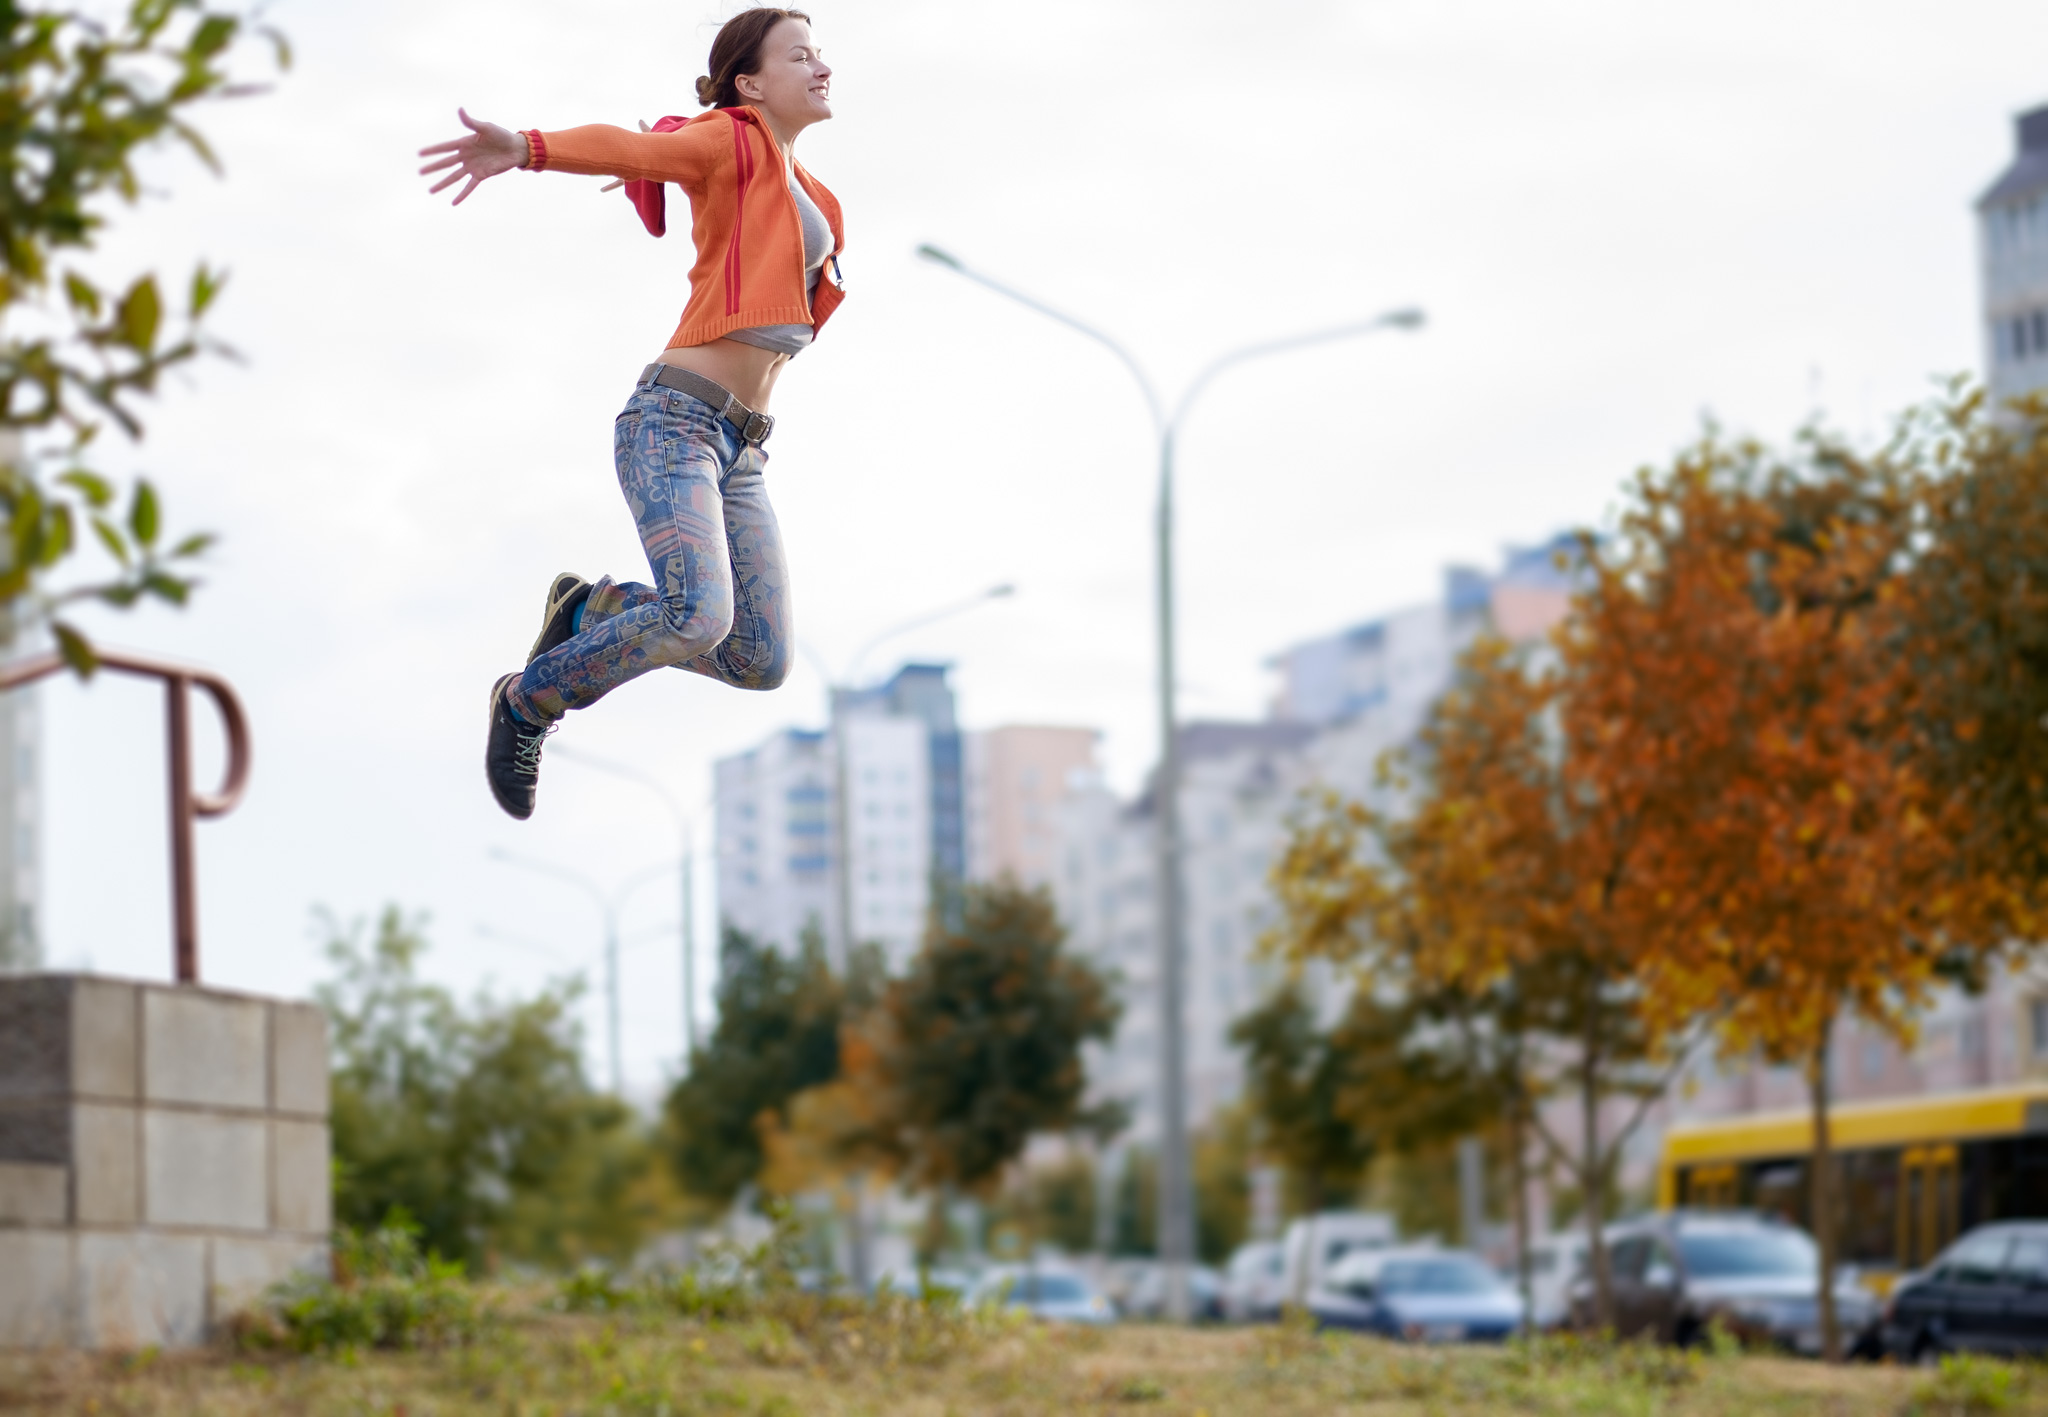 Autumn jumping portrait